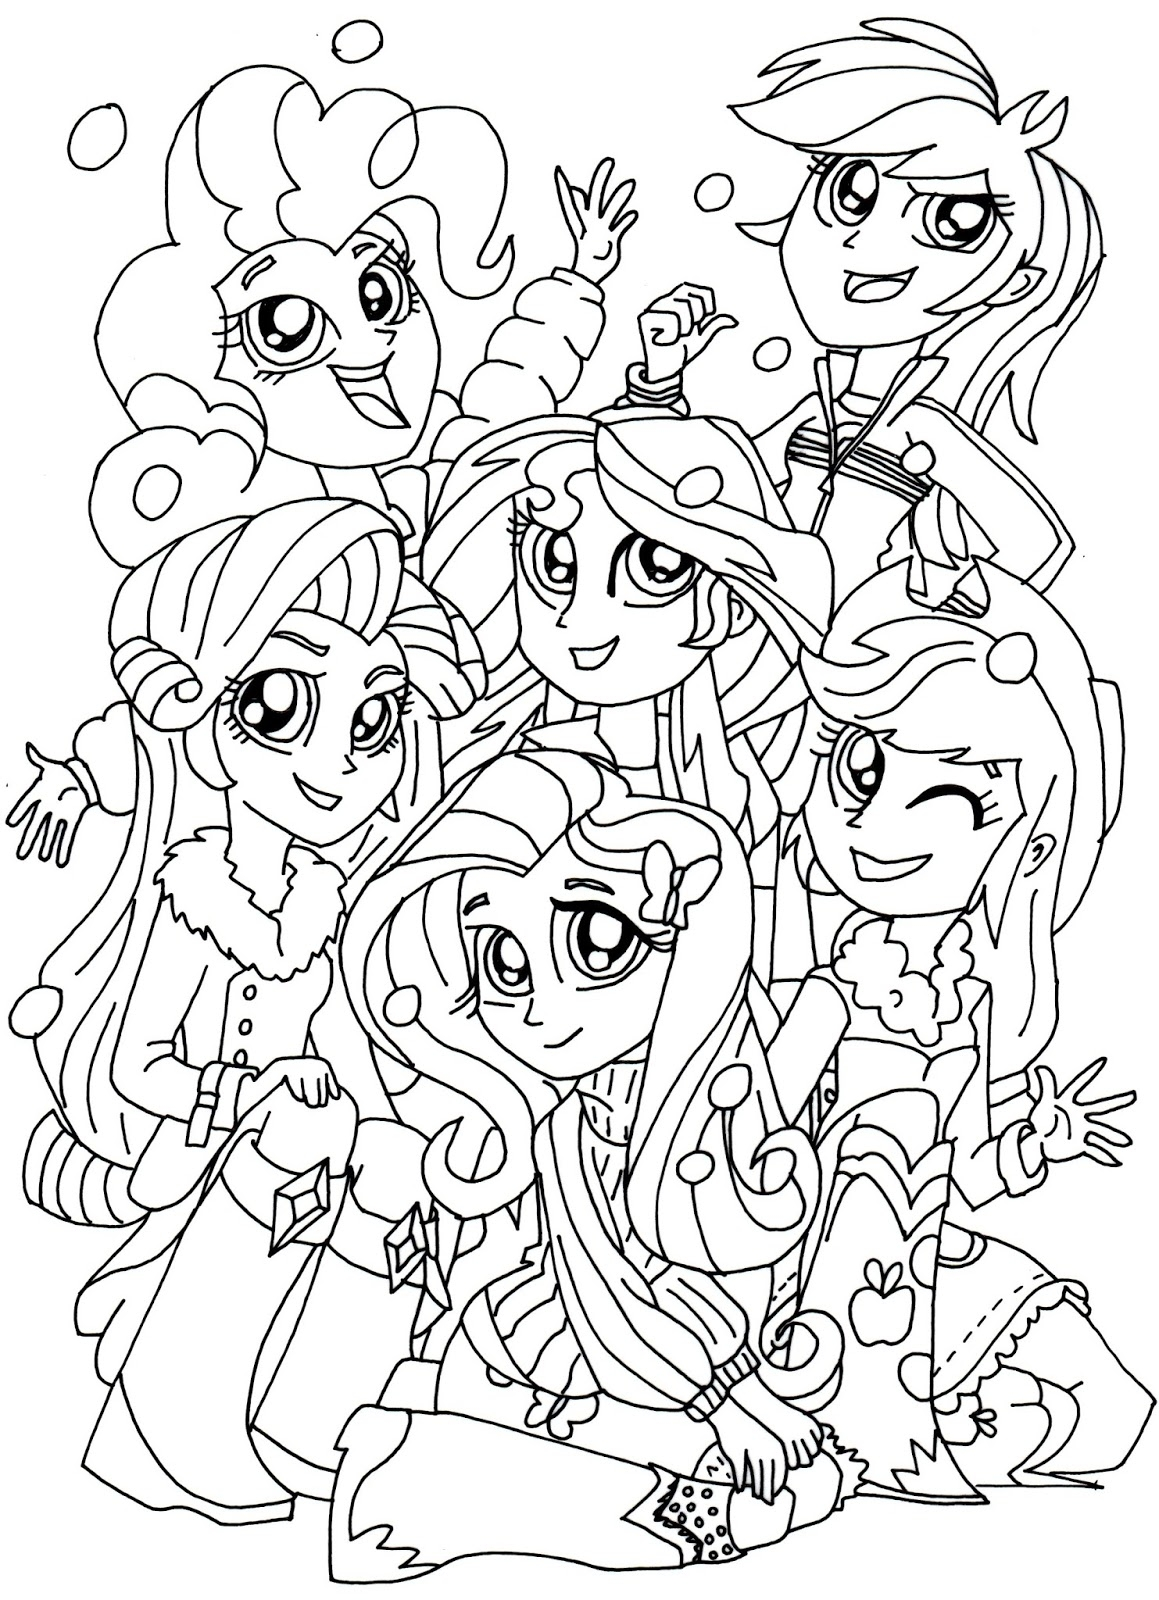 Equestria Girls Coloring Pages - My Little Pony Equestria Girls Sunset Shimmer Coloring Page